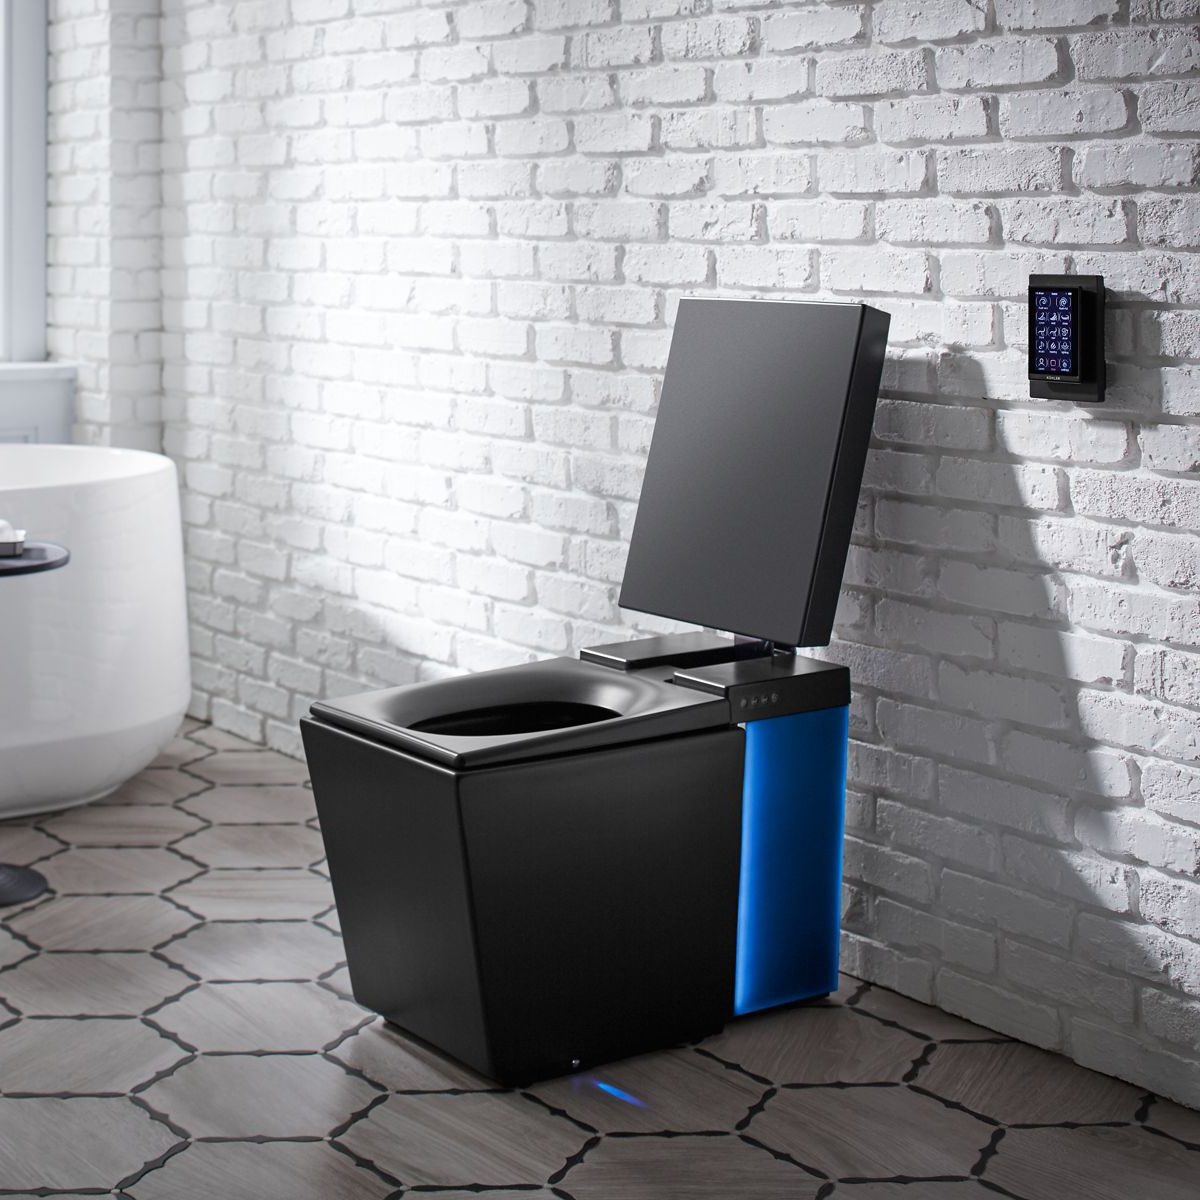 Kohlers New Smart Bathroom Products Can Connect to Alexa